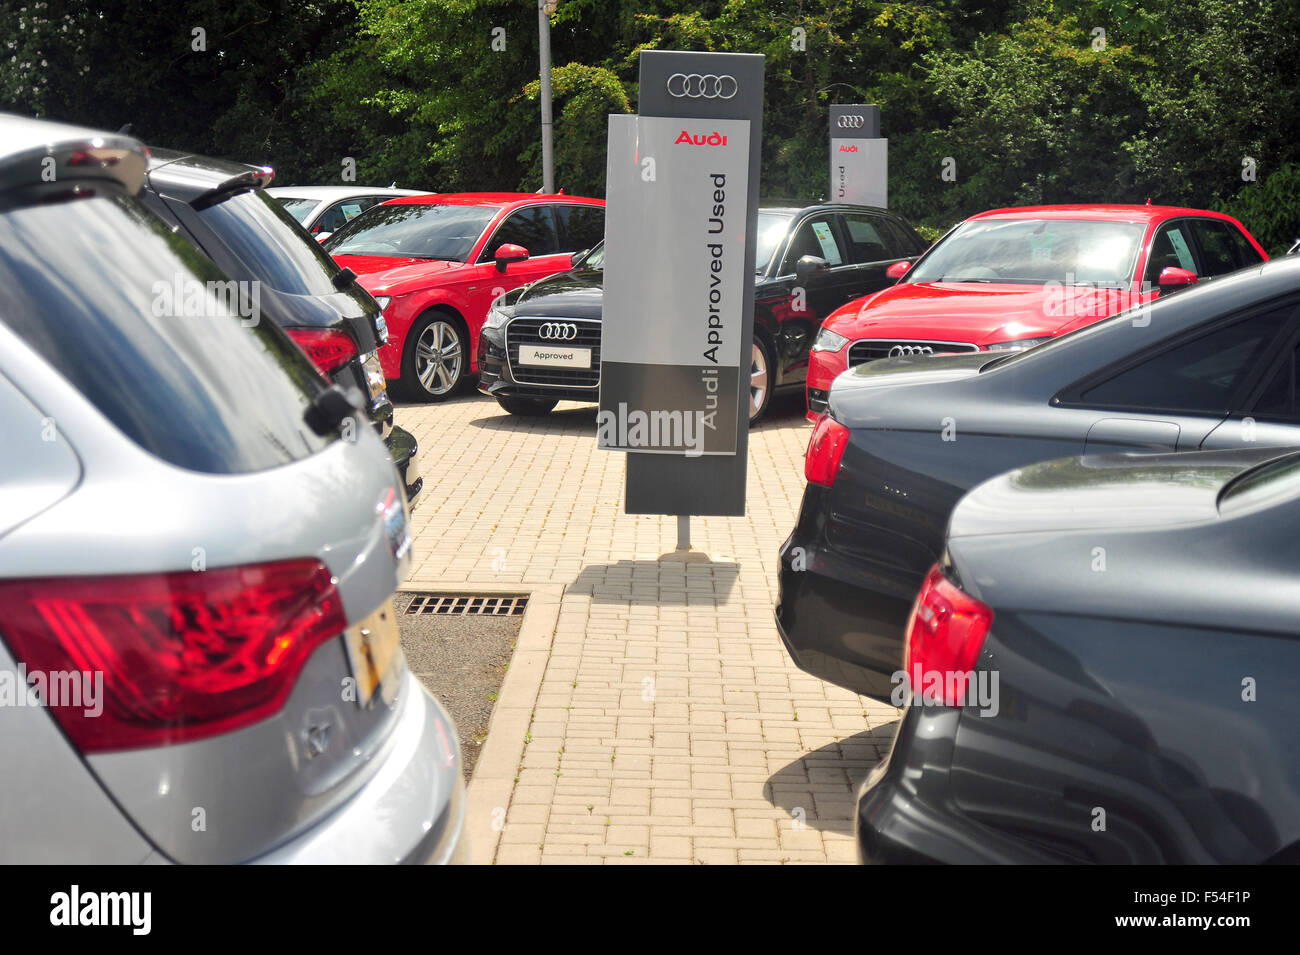 Approved used Audi cars at an Audi car dealership near to the Gloucestershire town of Tetbury in the UK. - Stock Image